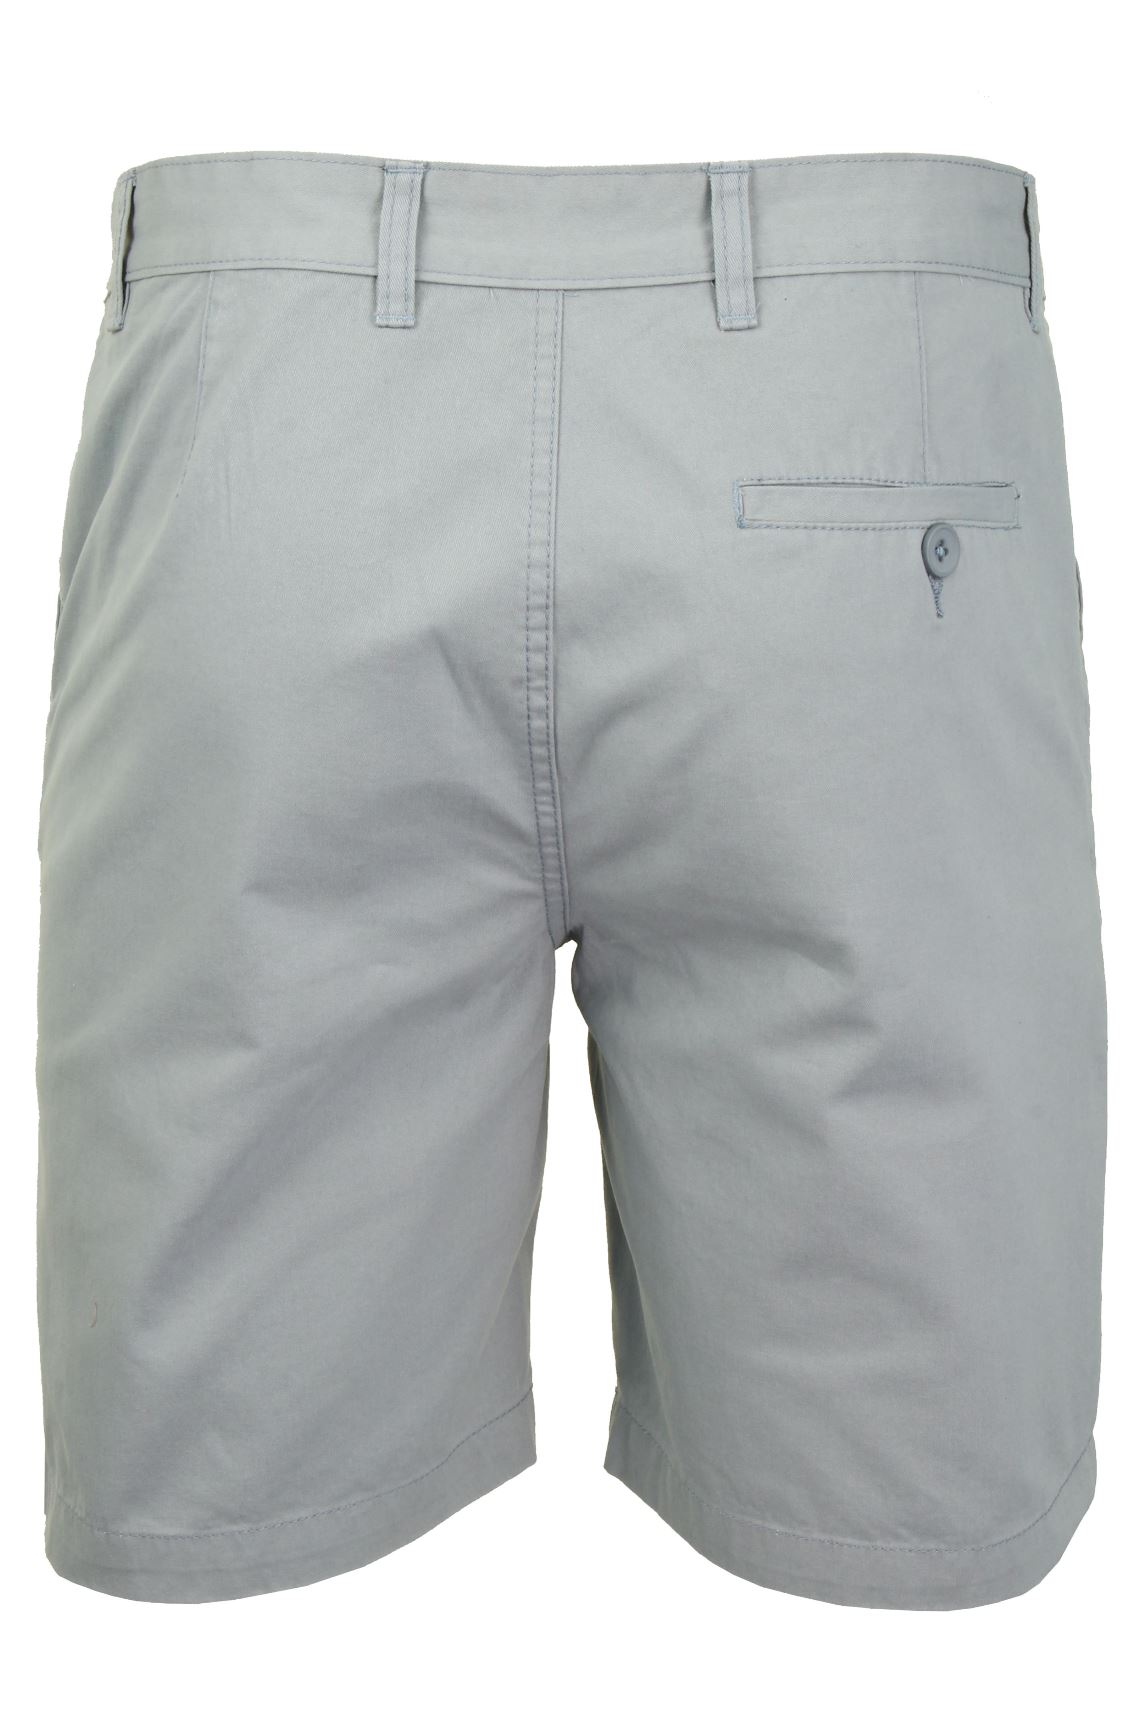 Xact-Chino-Shorts-Mens-Soft-Feel-Cotton-Fashion-Garment thumbnail 14